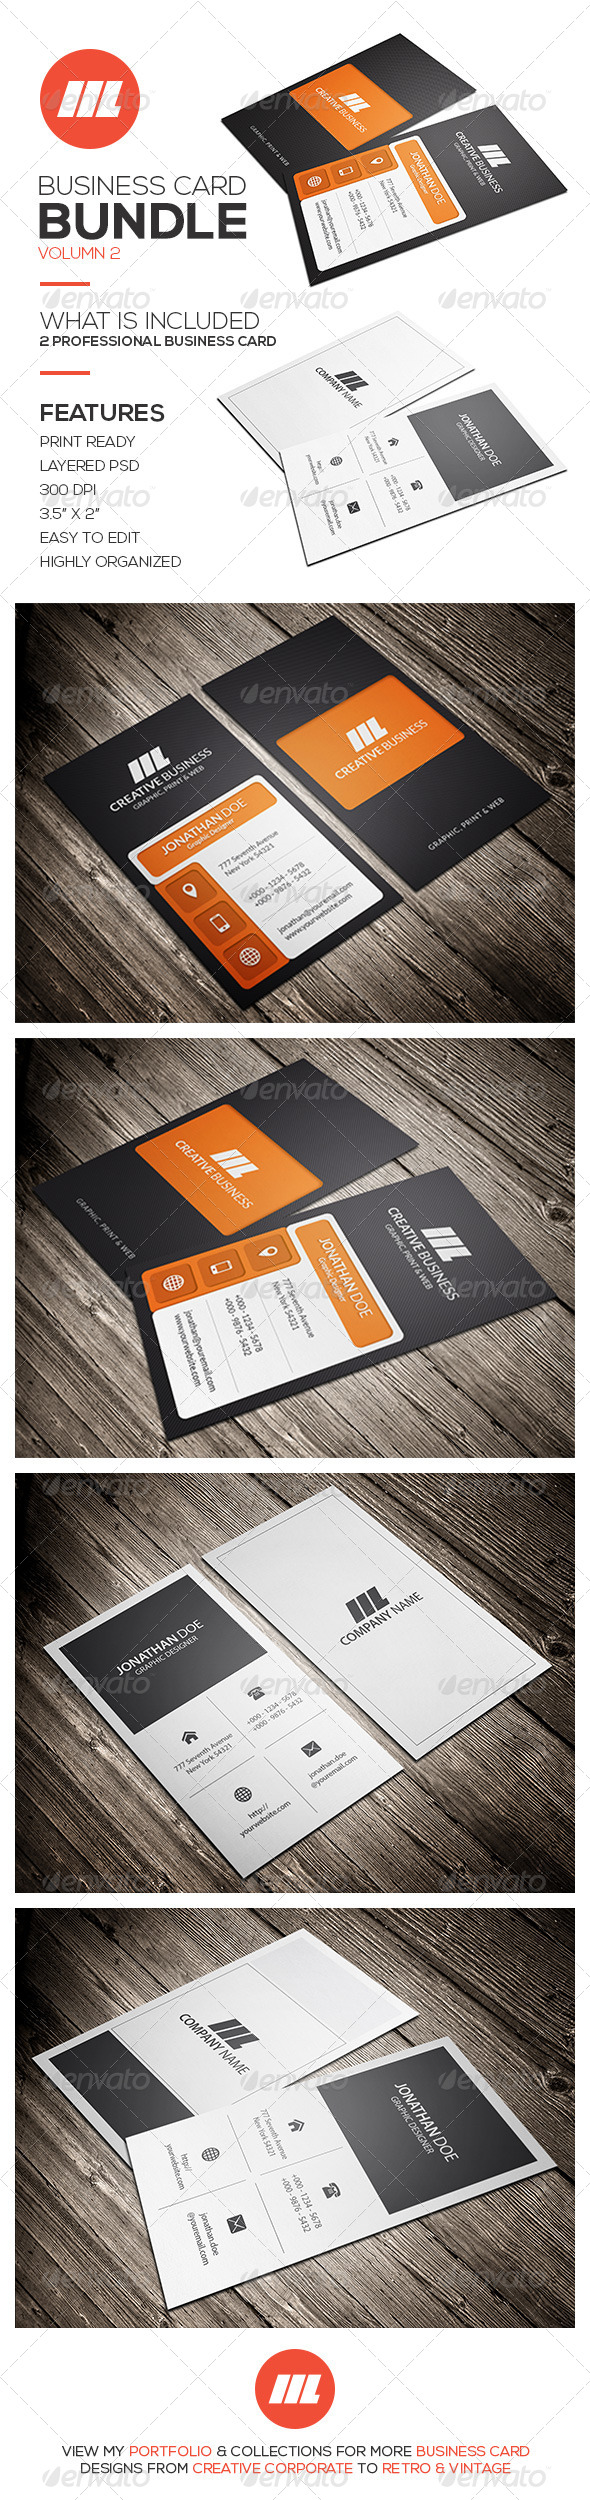 GraphicRiver Business Card Bundle Vol 2 8606040